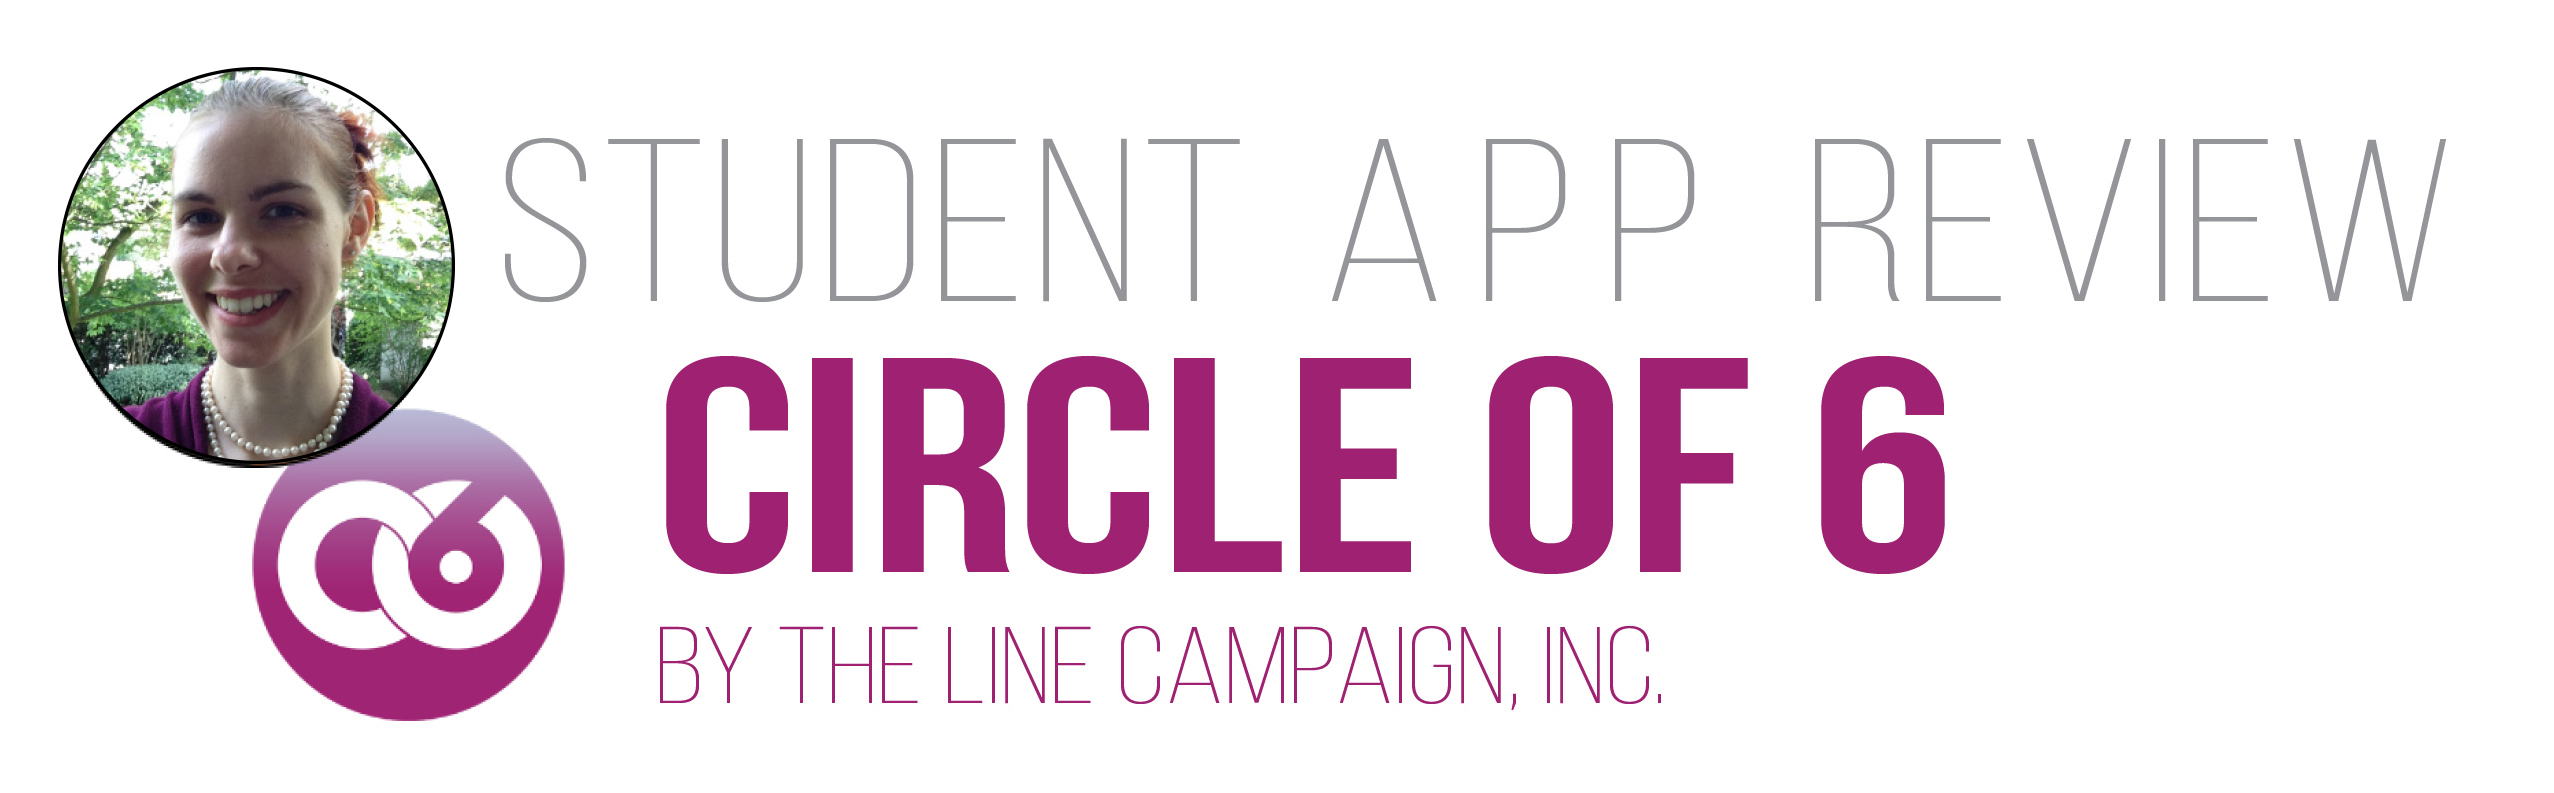 Student app review: Circle of 6